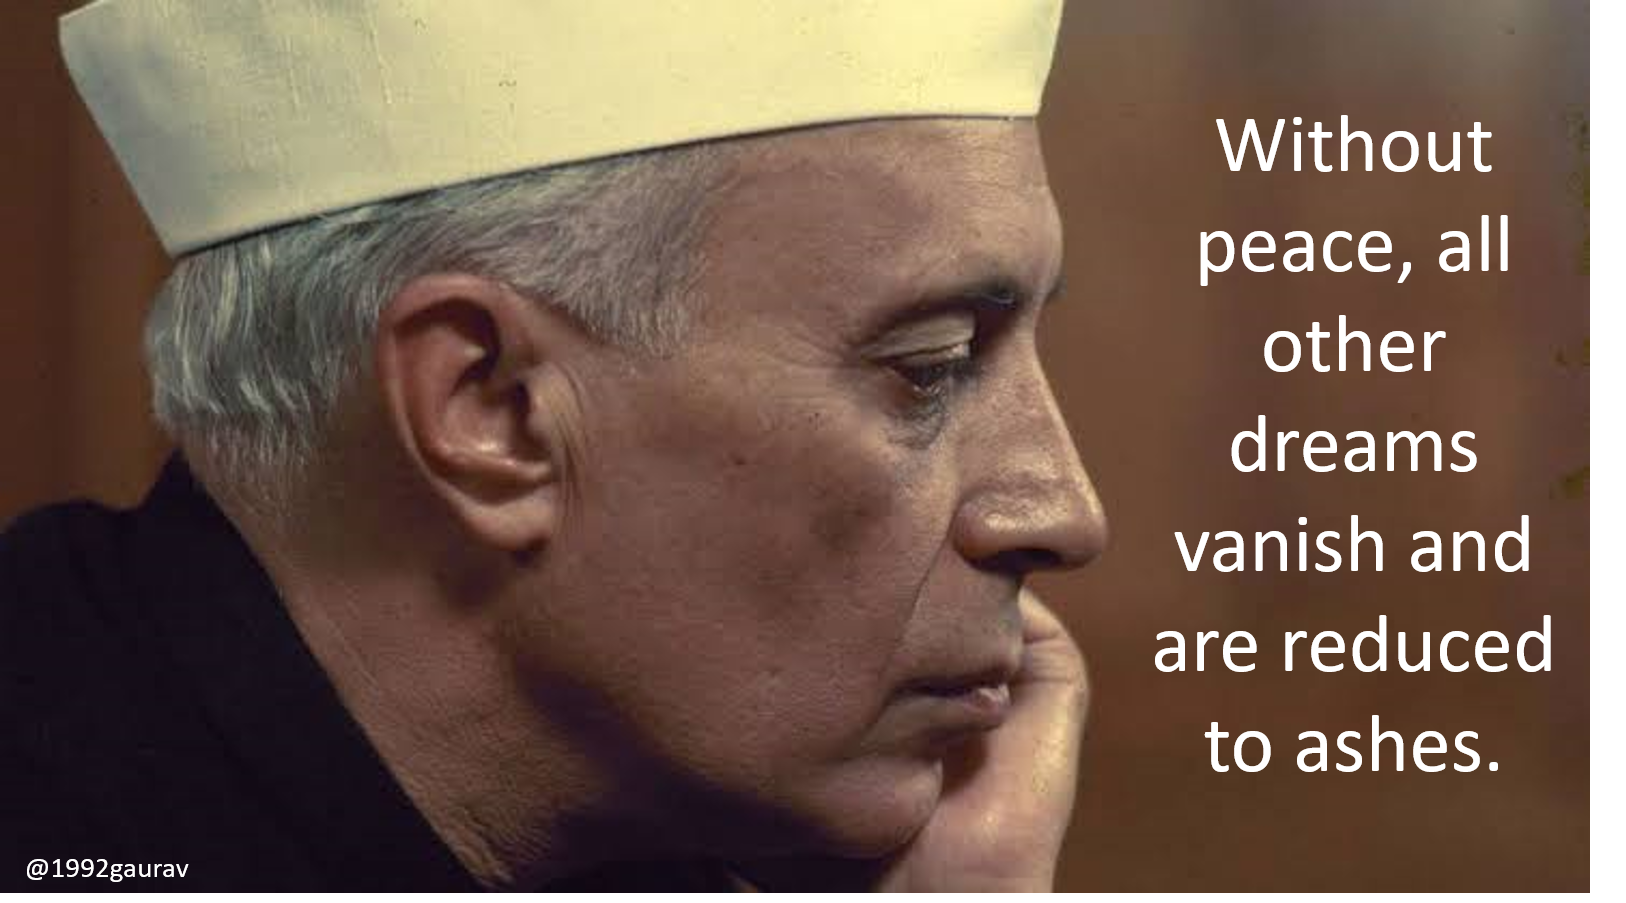 Jawaharlal Nehru's quote on Peace – Highly relevant in times like these in India – JNUAttack [1626×903]